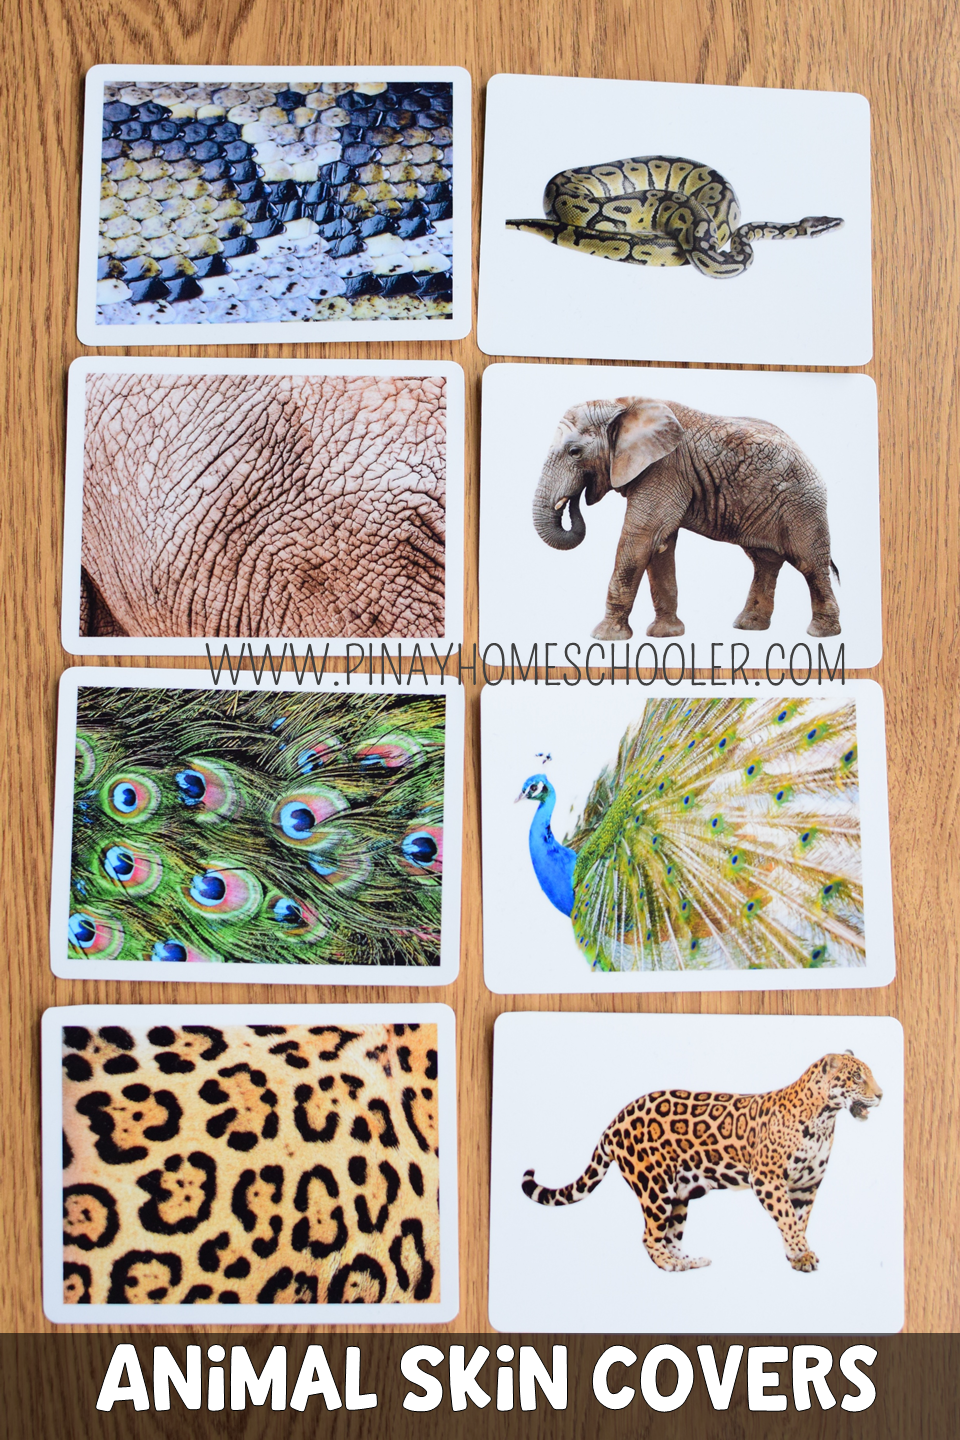 This Is A Montessori Inspired Learning Material Used Mainly For Learning About The Different Skin Animal Covers K Animal Coverings Animal Skin Animal Habitats